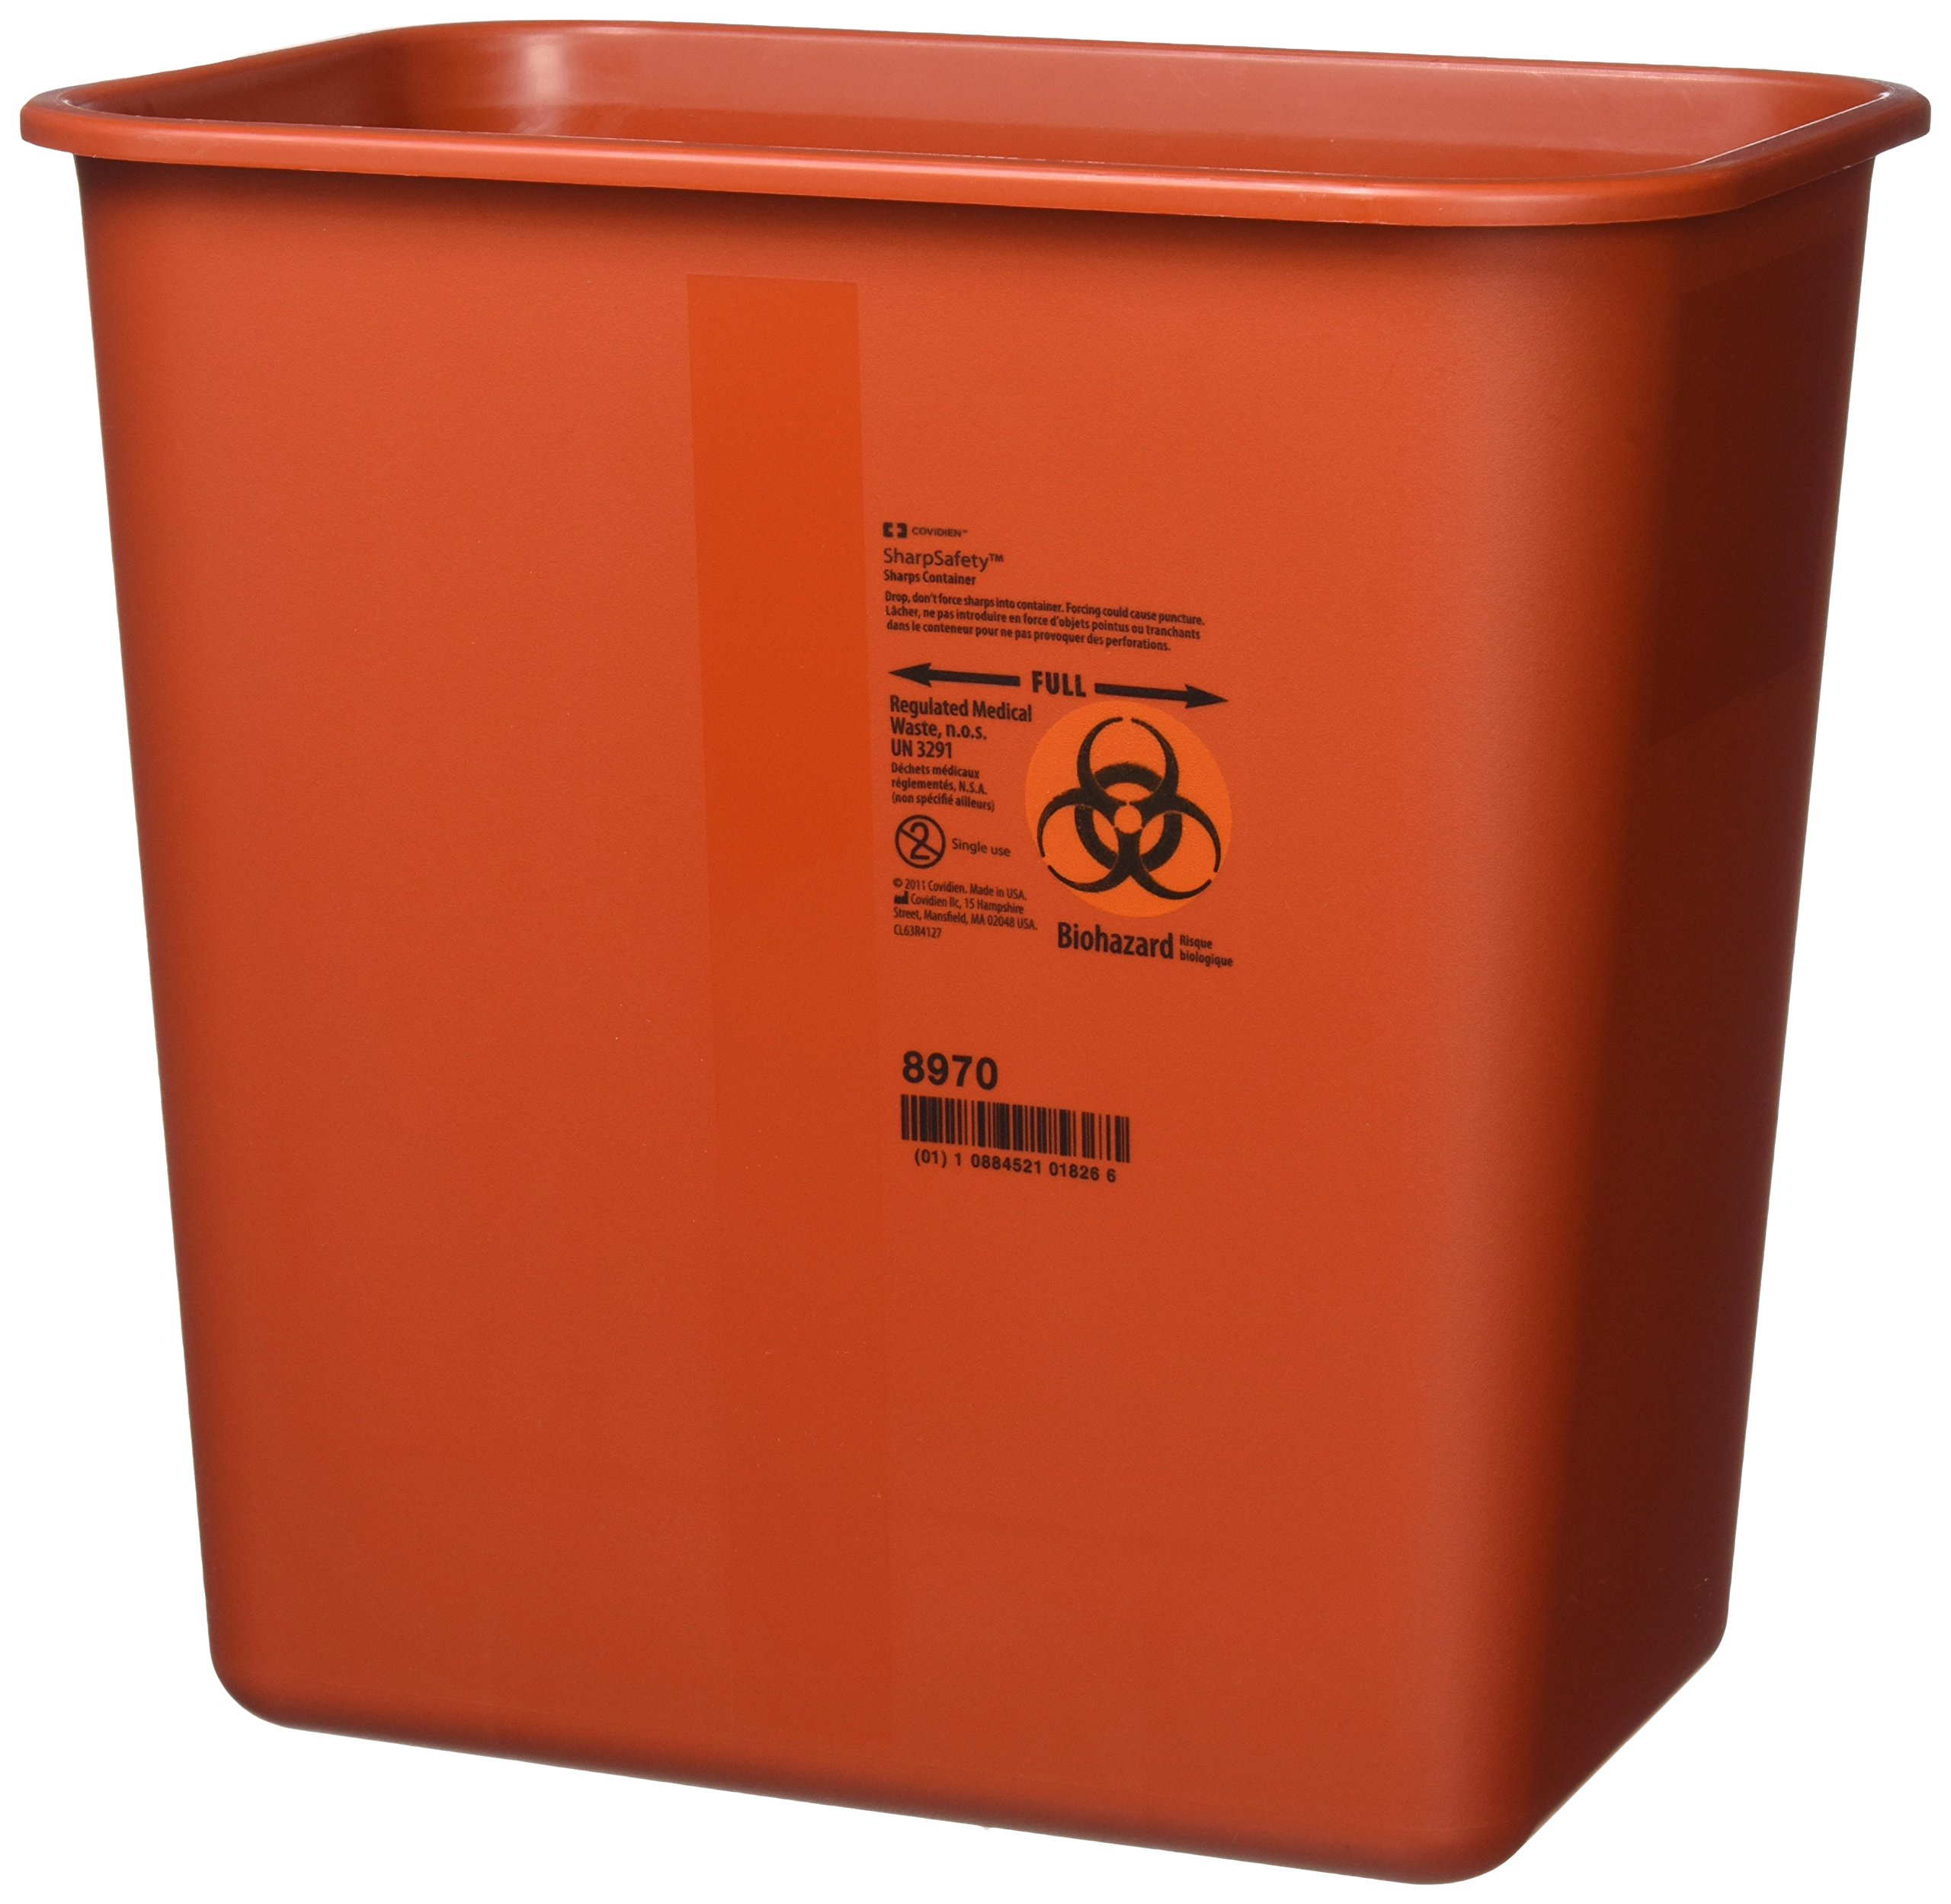 Kendall Sharps Container with Rotor Lid - 2 Gallon - Pack of 3